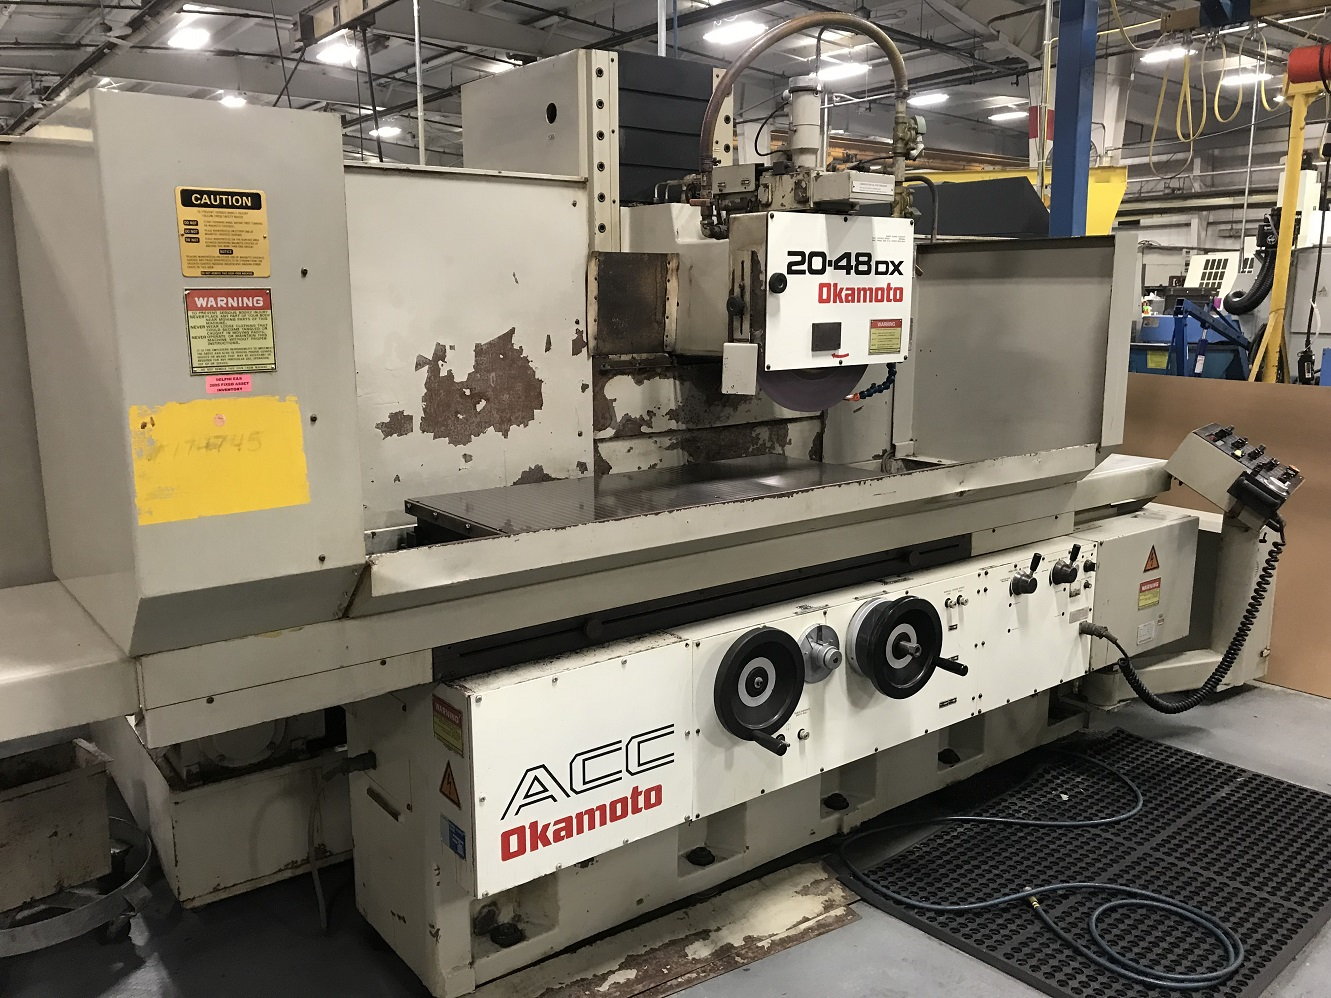 Okamoto ACC20-48DX, DX Control w/LED Display, Incr Downfeed, OTW Hyd Dresser, Sparkout, Rough/Fine Finish, Plunge, Coolant, Ballscrew on Vertical, 5 HP, 1994